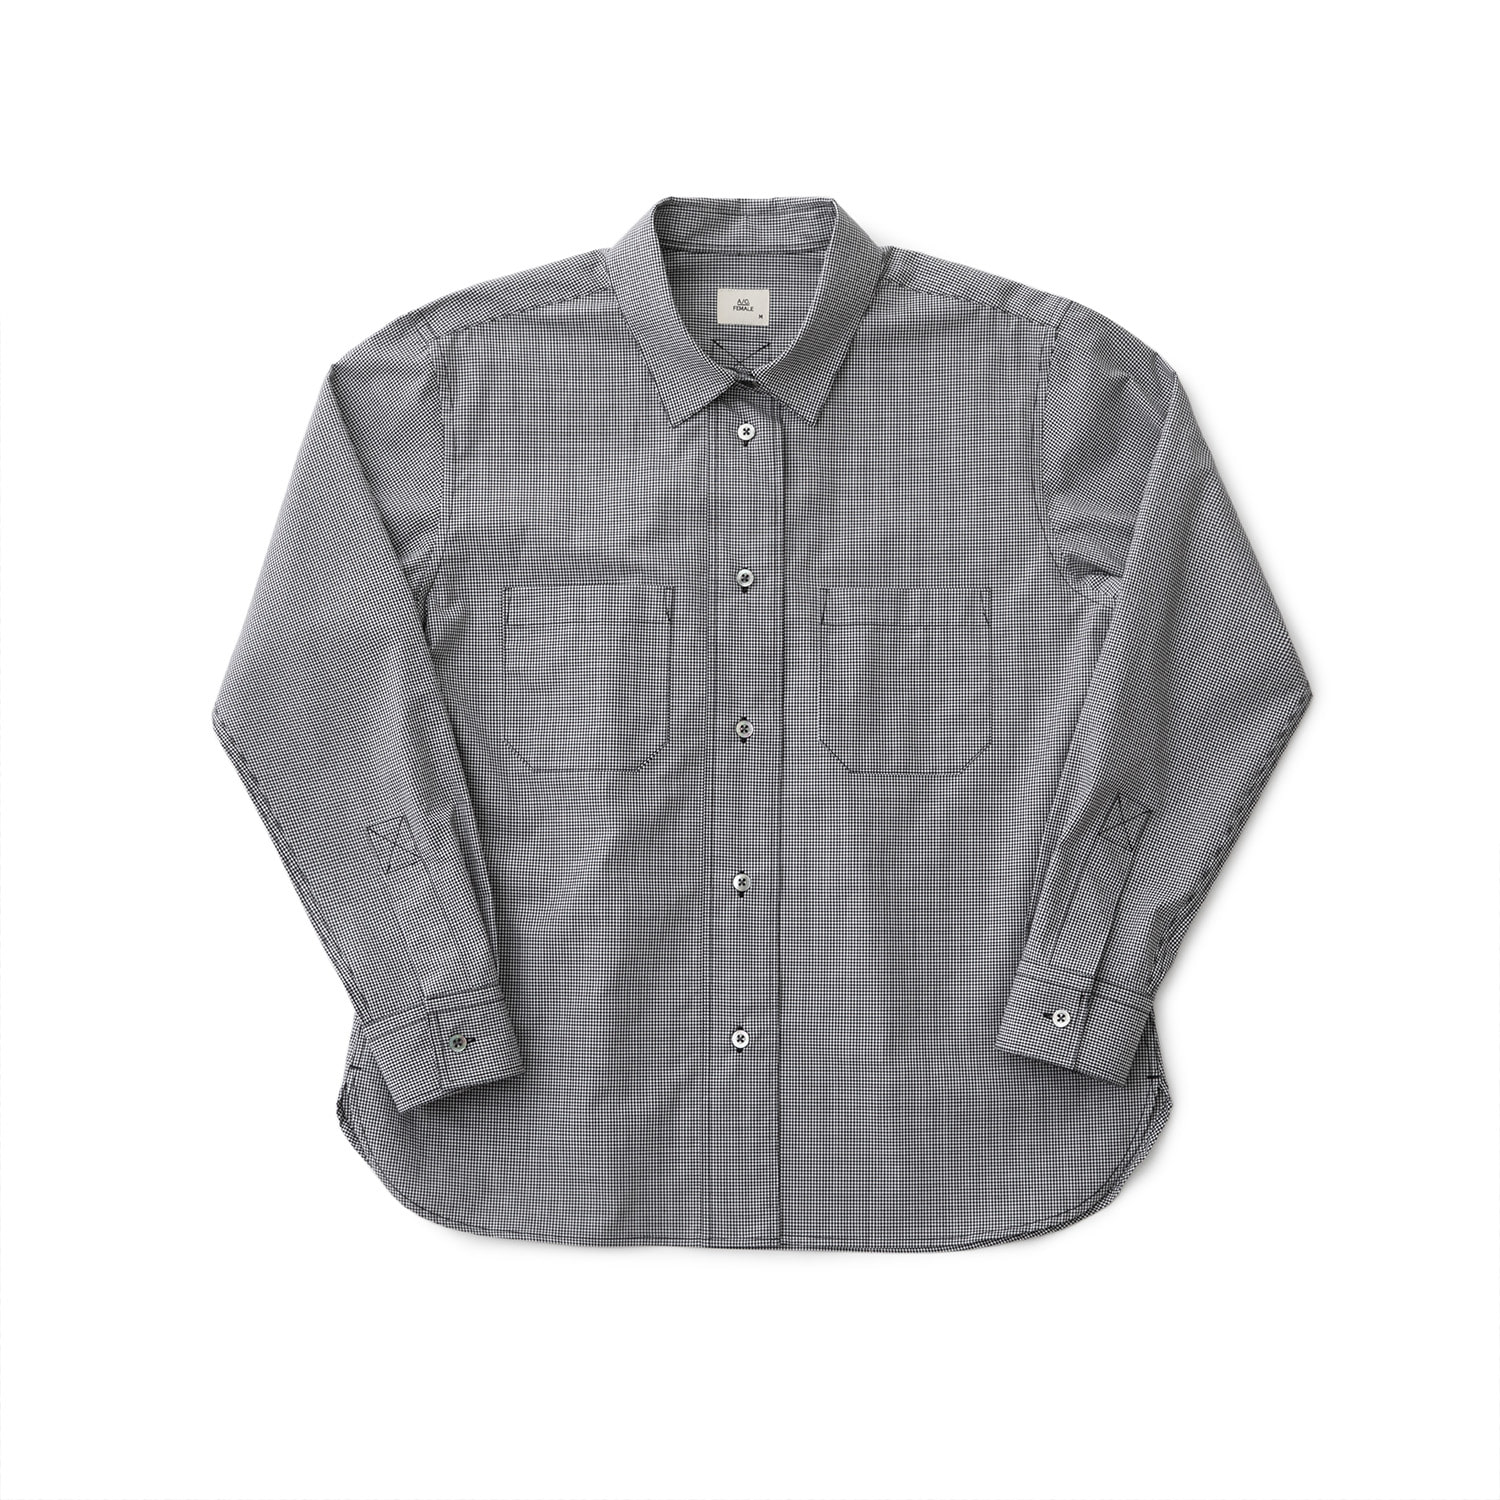 21SS Women Editor Shirt (Gingham Check)